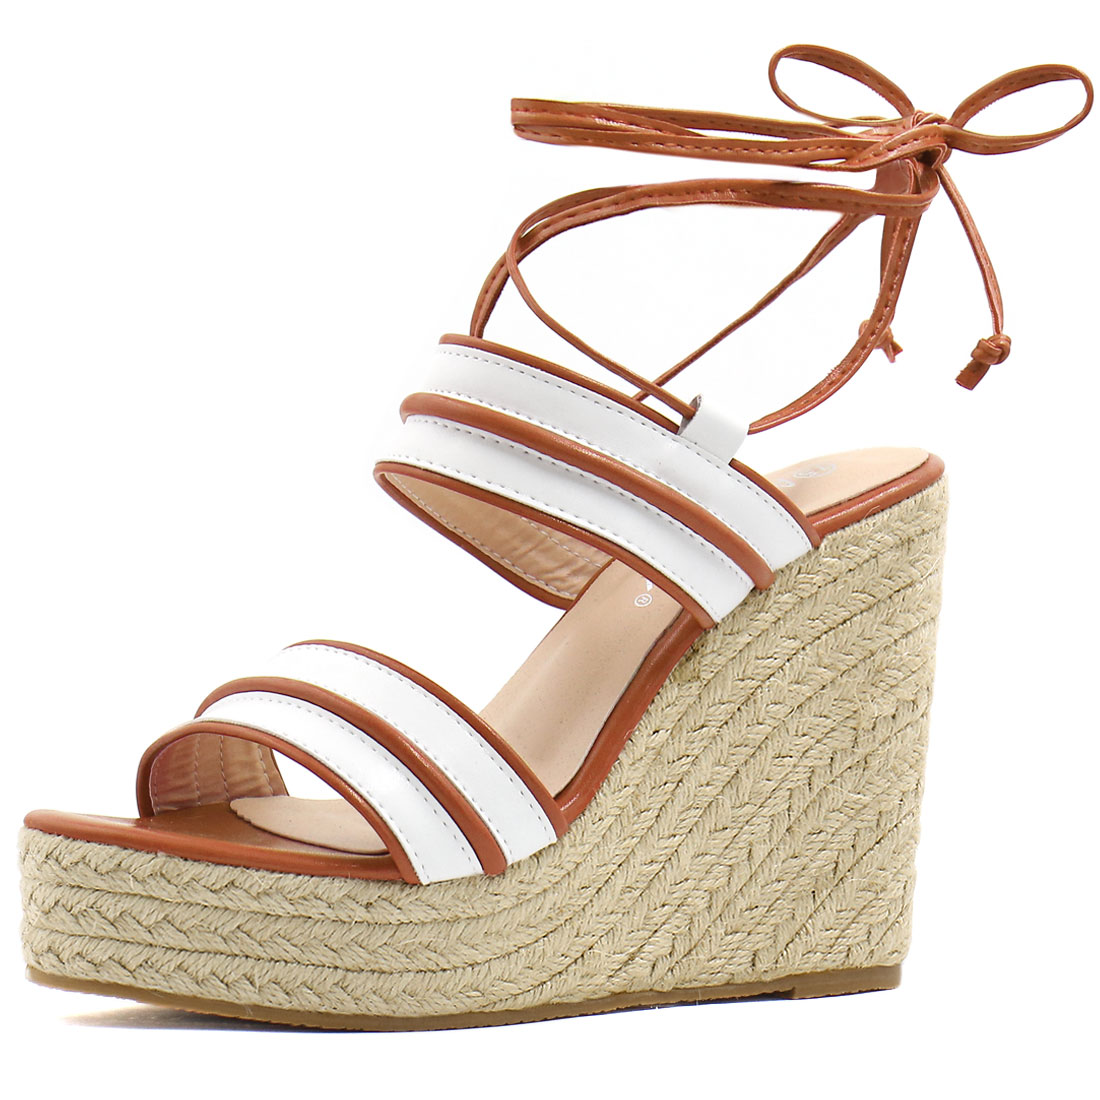 Women Striped Ankle Tie Espadrille Wedge Sandals White Camel US 6.5